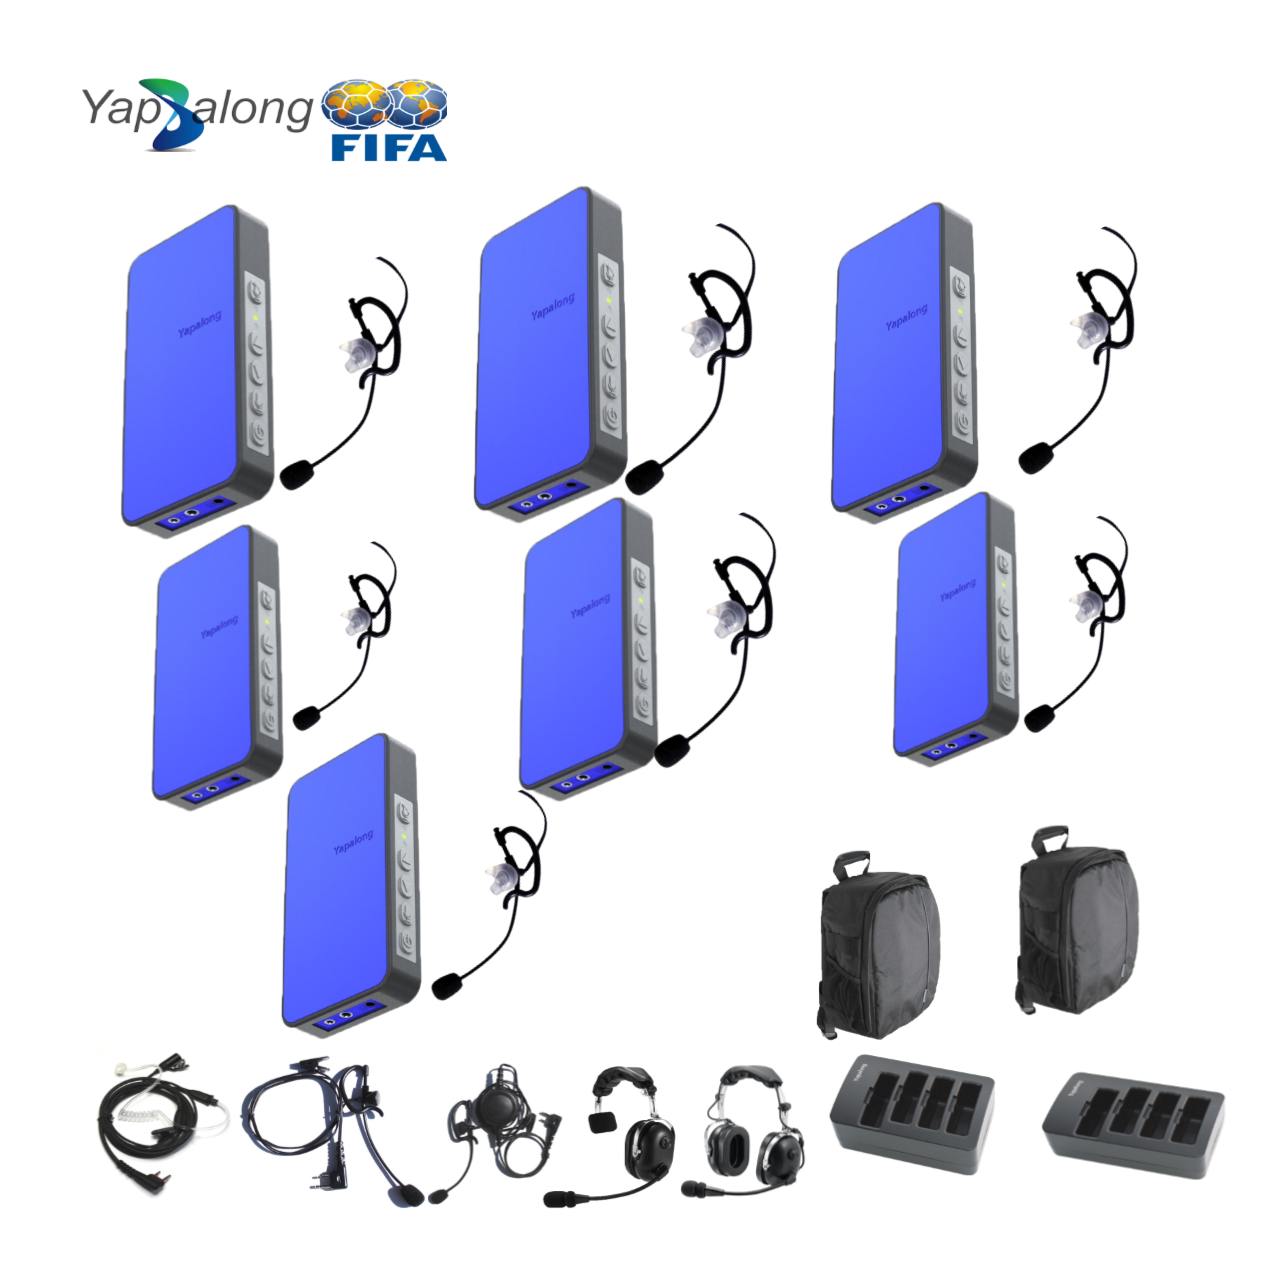 Yapalong 5000 (7-User) Complete Set Intercom Systems Intercom Systems